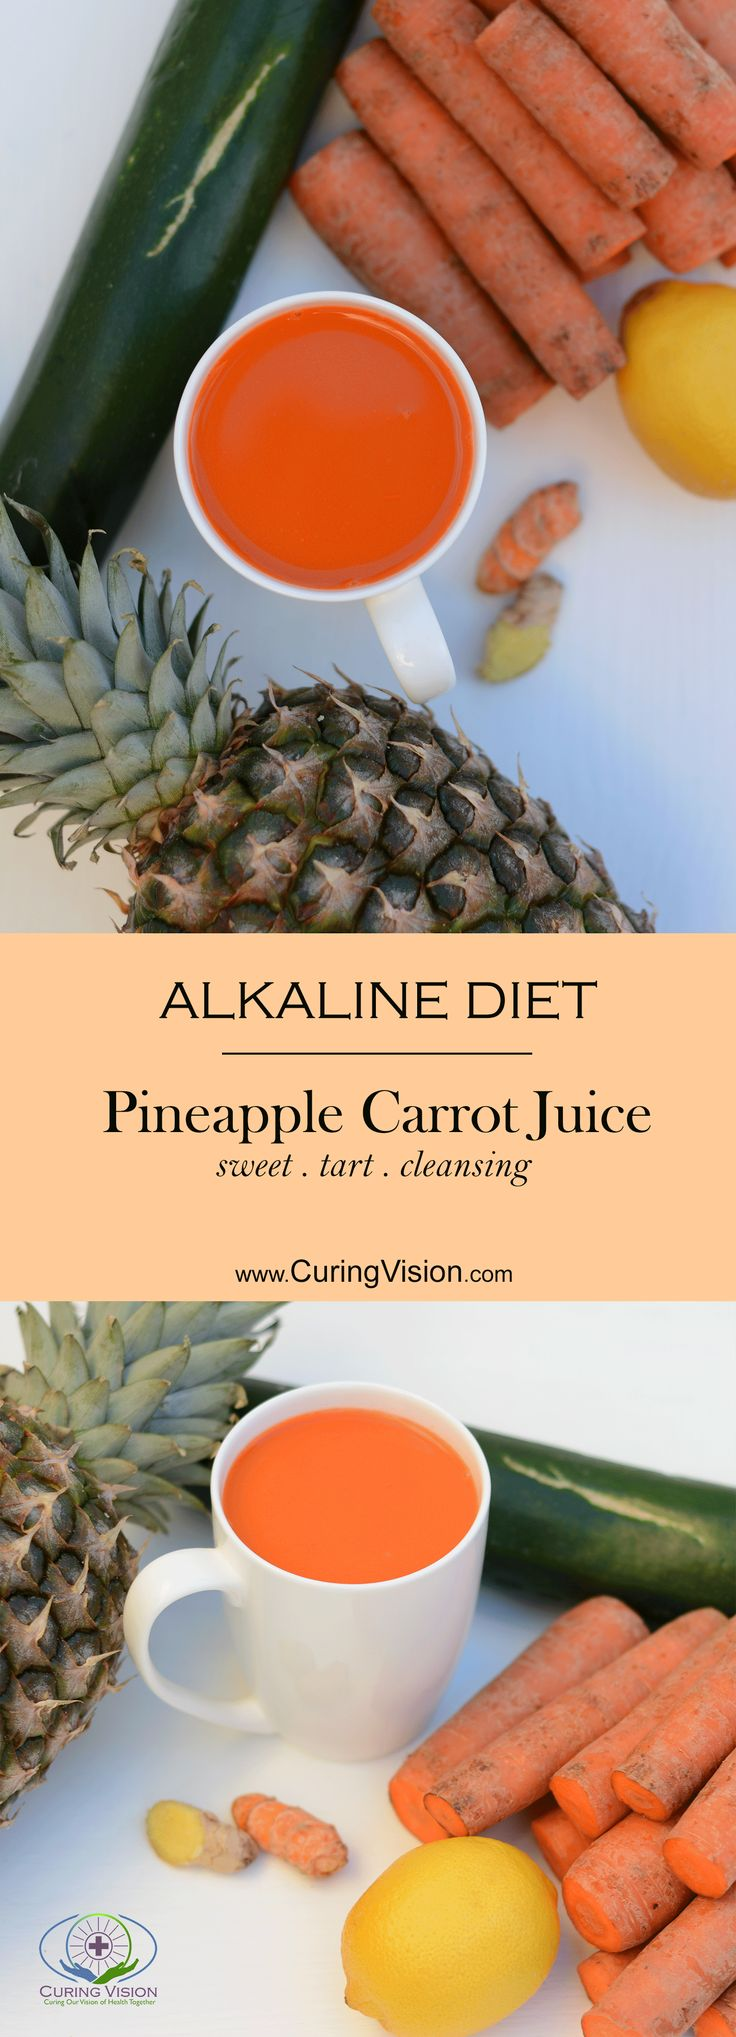 Alkaline Diet Pineapple Carrot Juice Recipe for The Wahls Protocol, Paleo AIP, Autoimmune Disease Protocol, and Leaky-gut Health